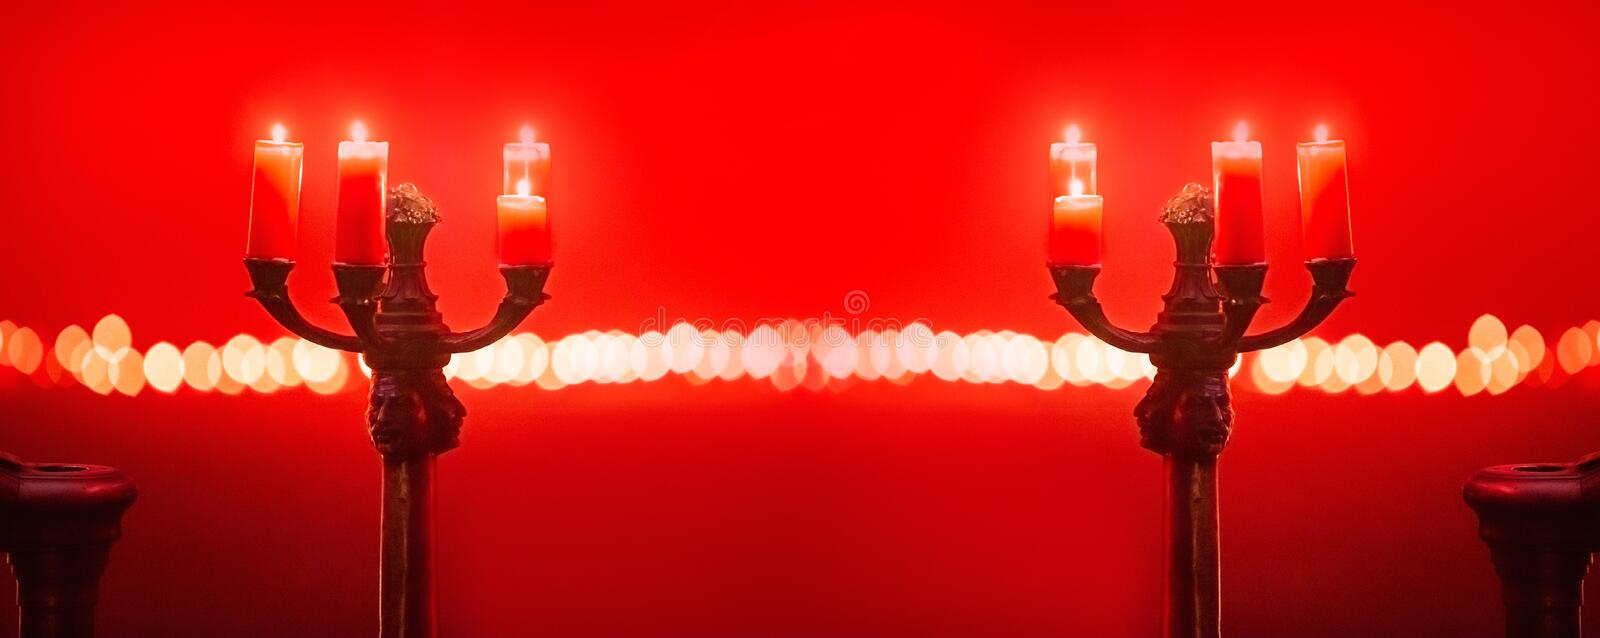 Candles in candlestick holder in red room royalty free stock photography